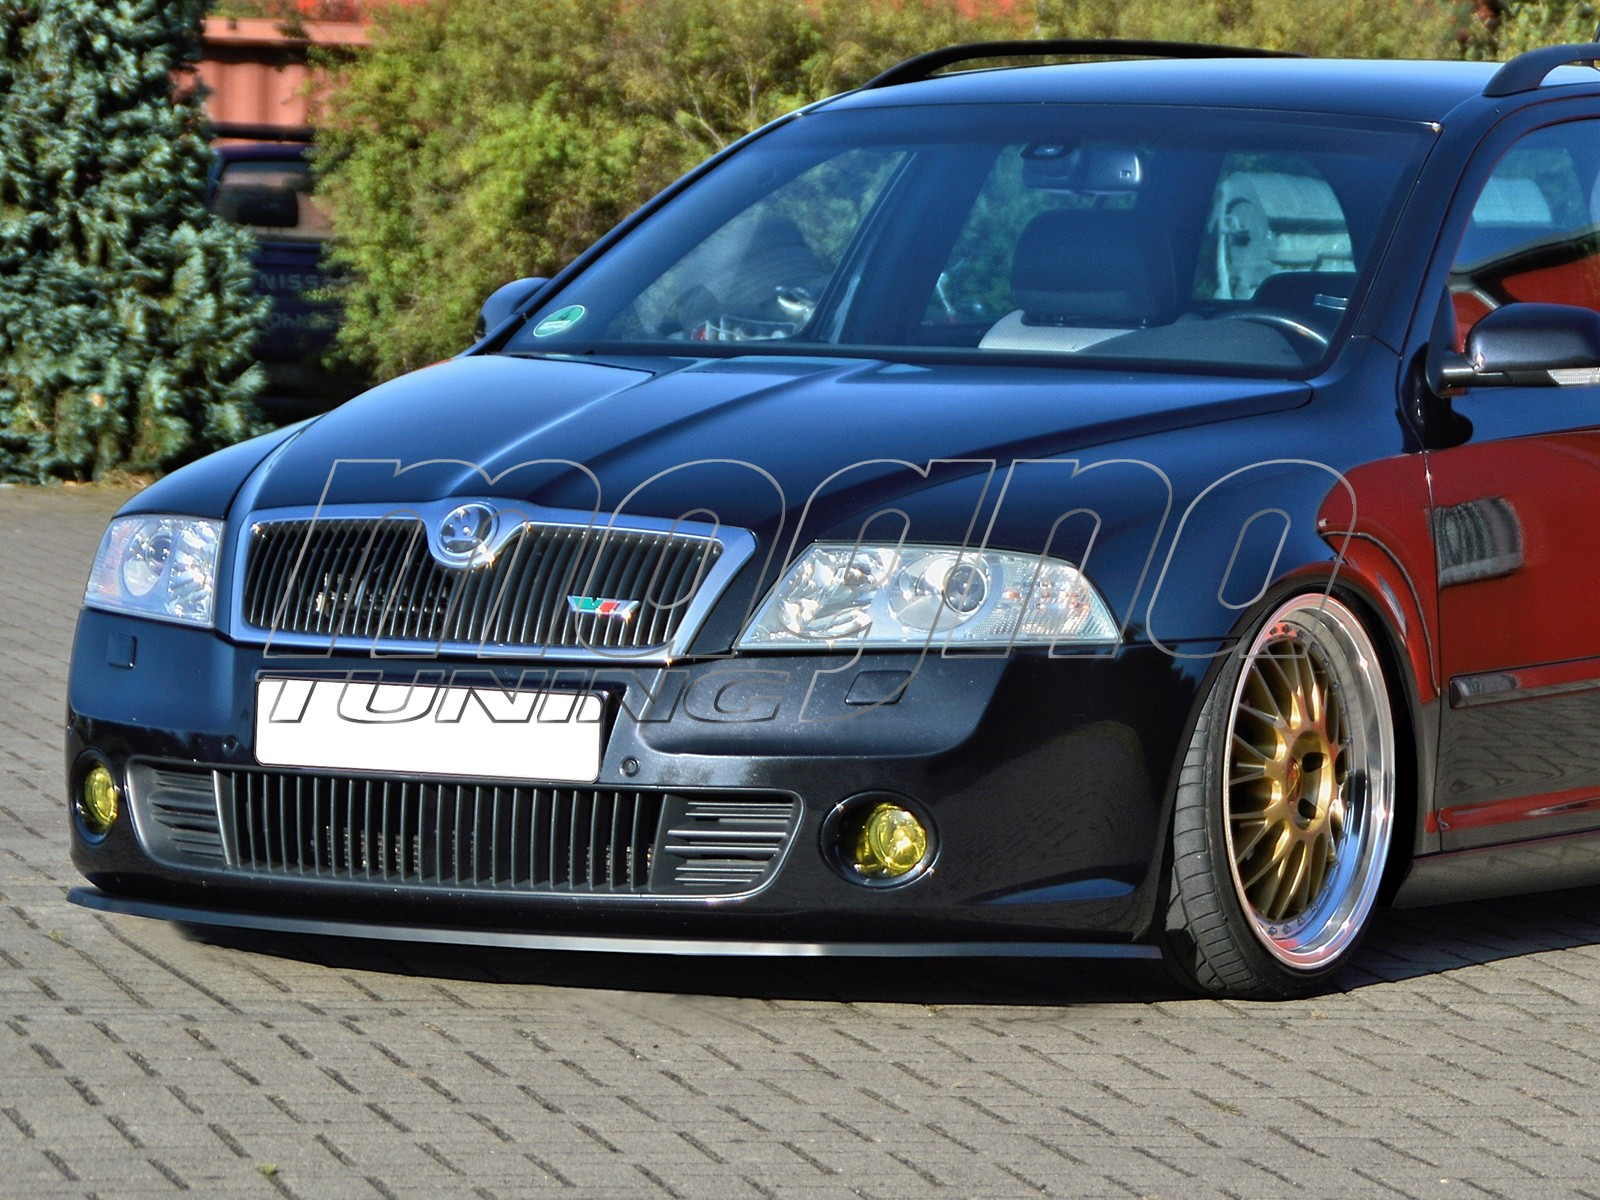 skoda octavia mk2 1z rs intenso front bumper extension. Black Bedroom Furniture Sets. Home Design Ideas